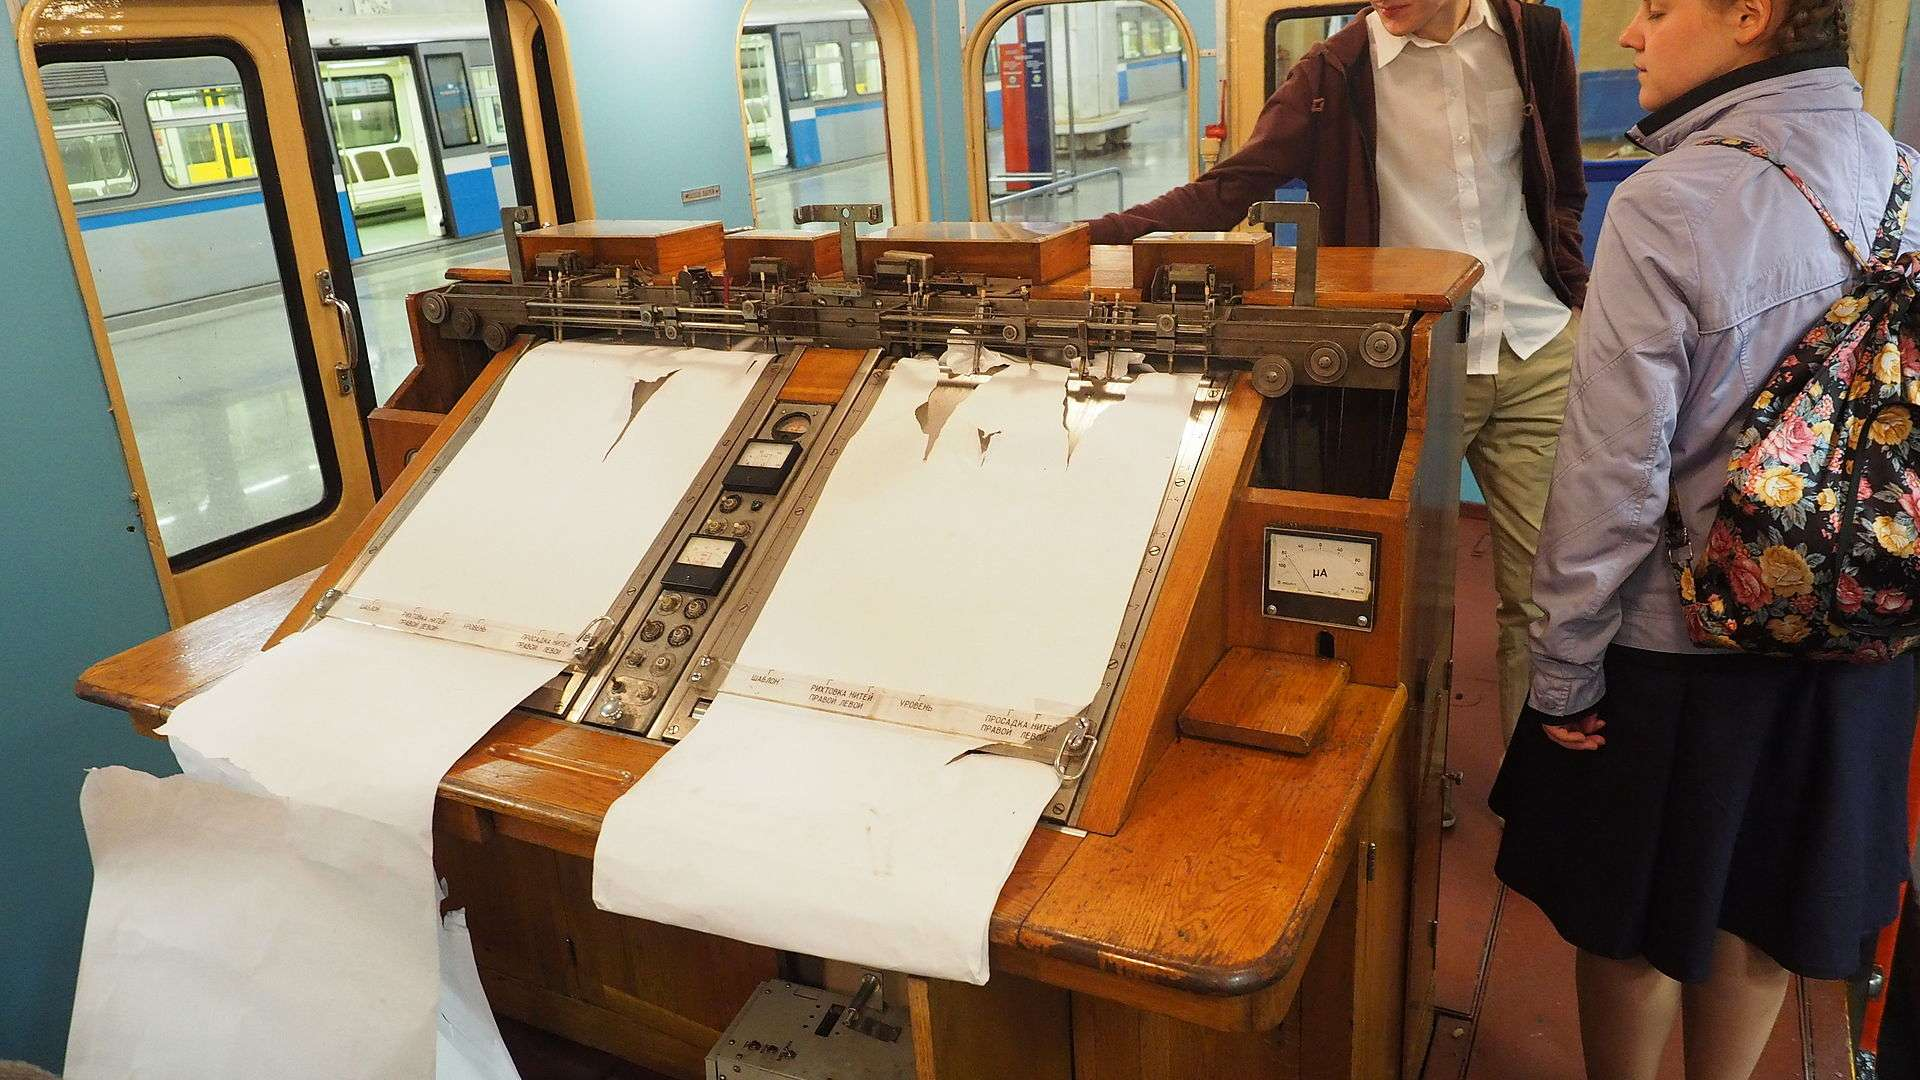 Moscow metro UM5 806 track measure museum car graphics table